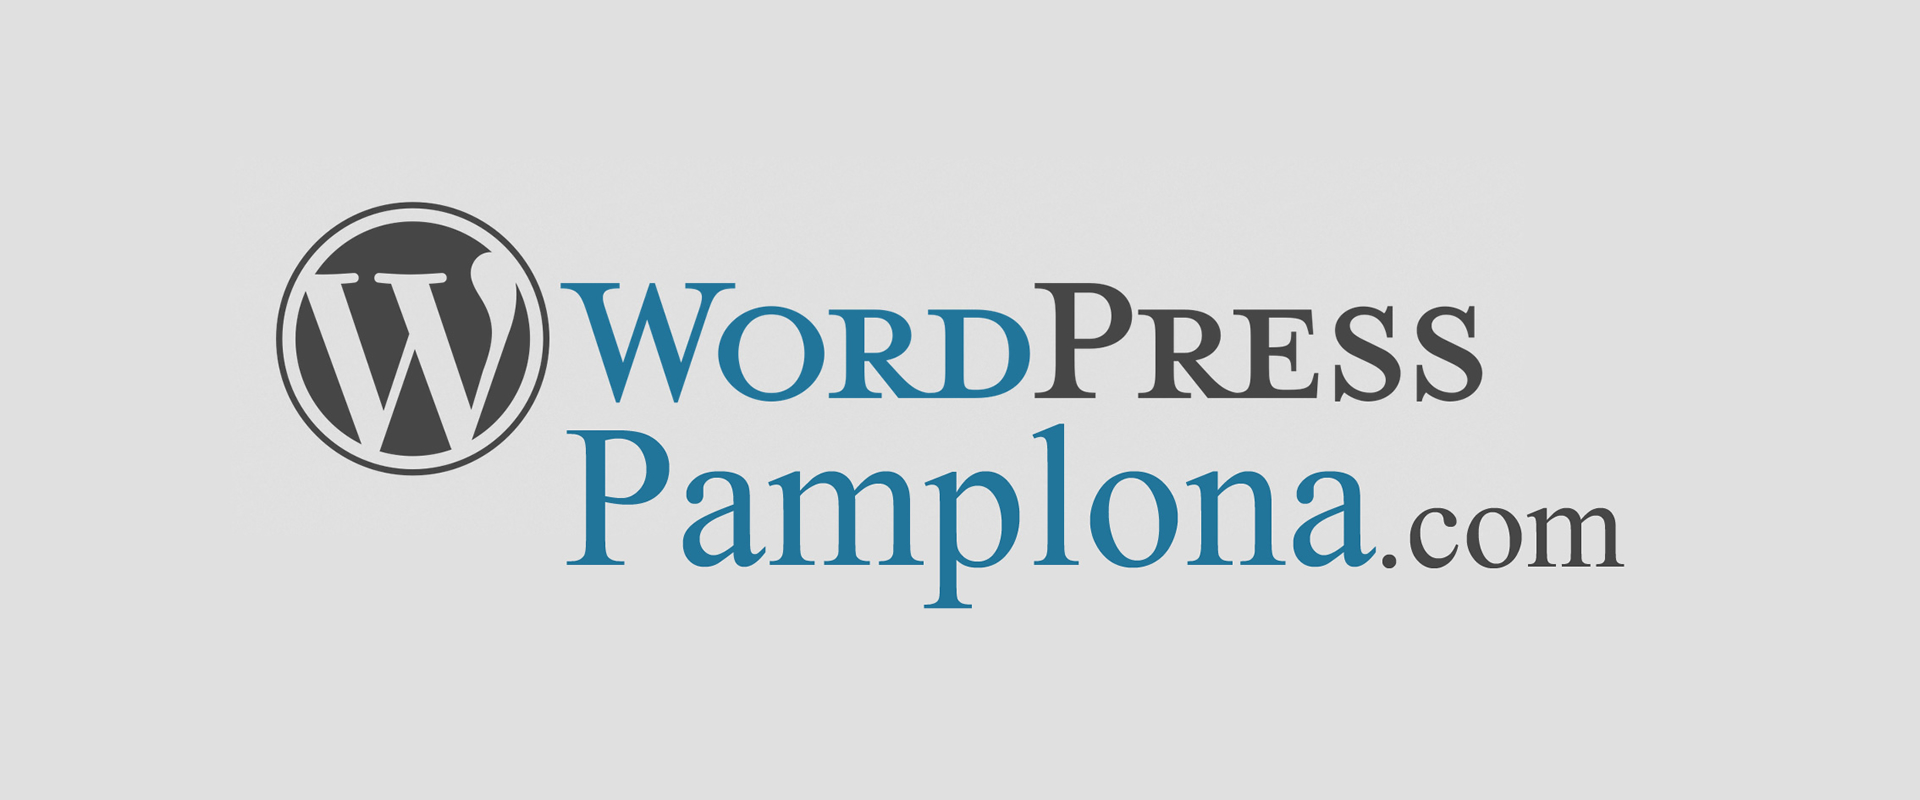 El Blog de WordPress